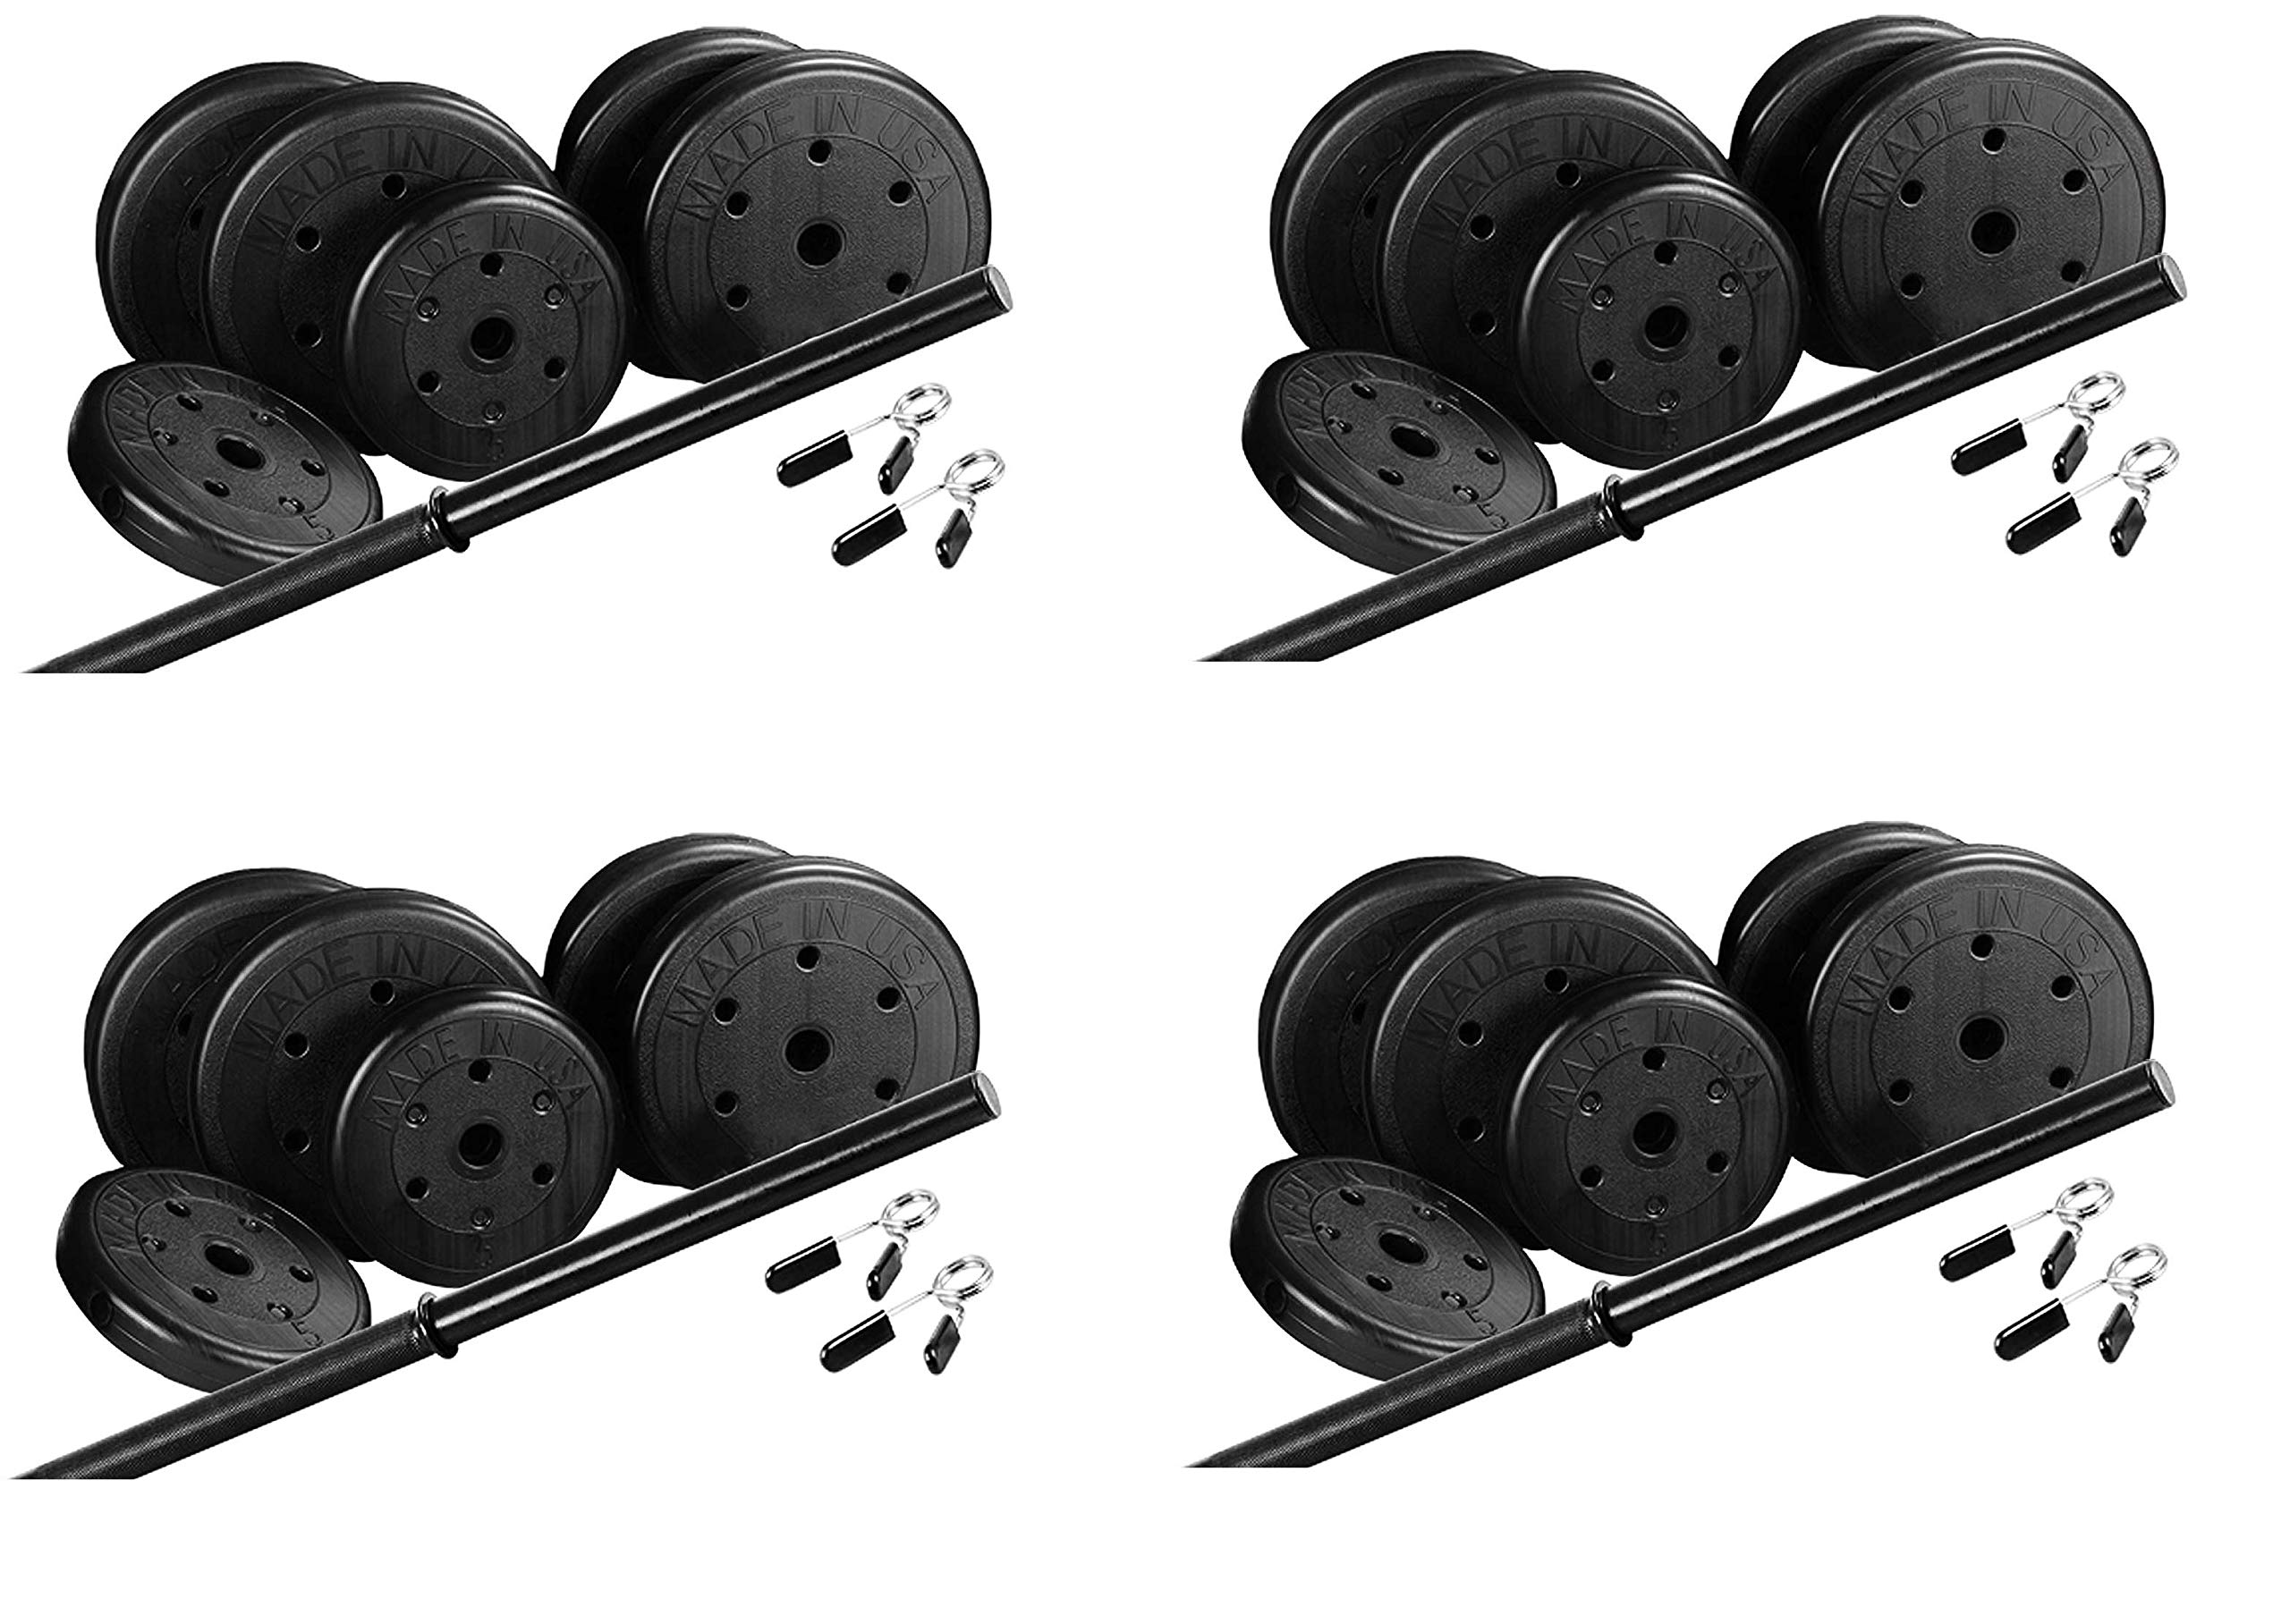 US Weight Duracast 55 lb. Barbell Weight Set with Two 5 lb. Weights, Four 10 lb. Weights, One 4 lb. Two-Piece Threaded Barbell Bar, Two Locking Spring Clips (Fоur Расk)